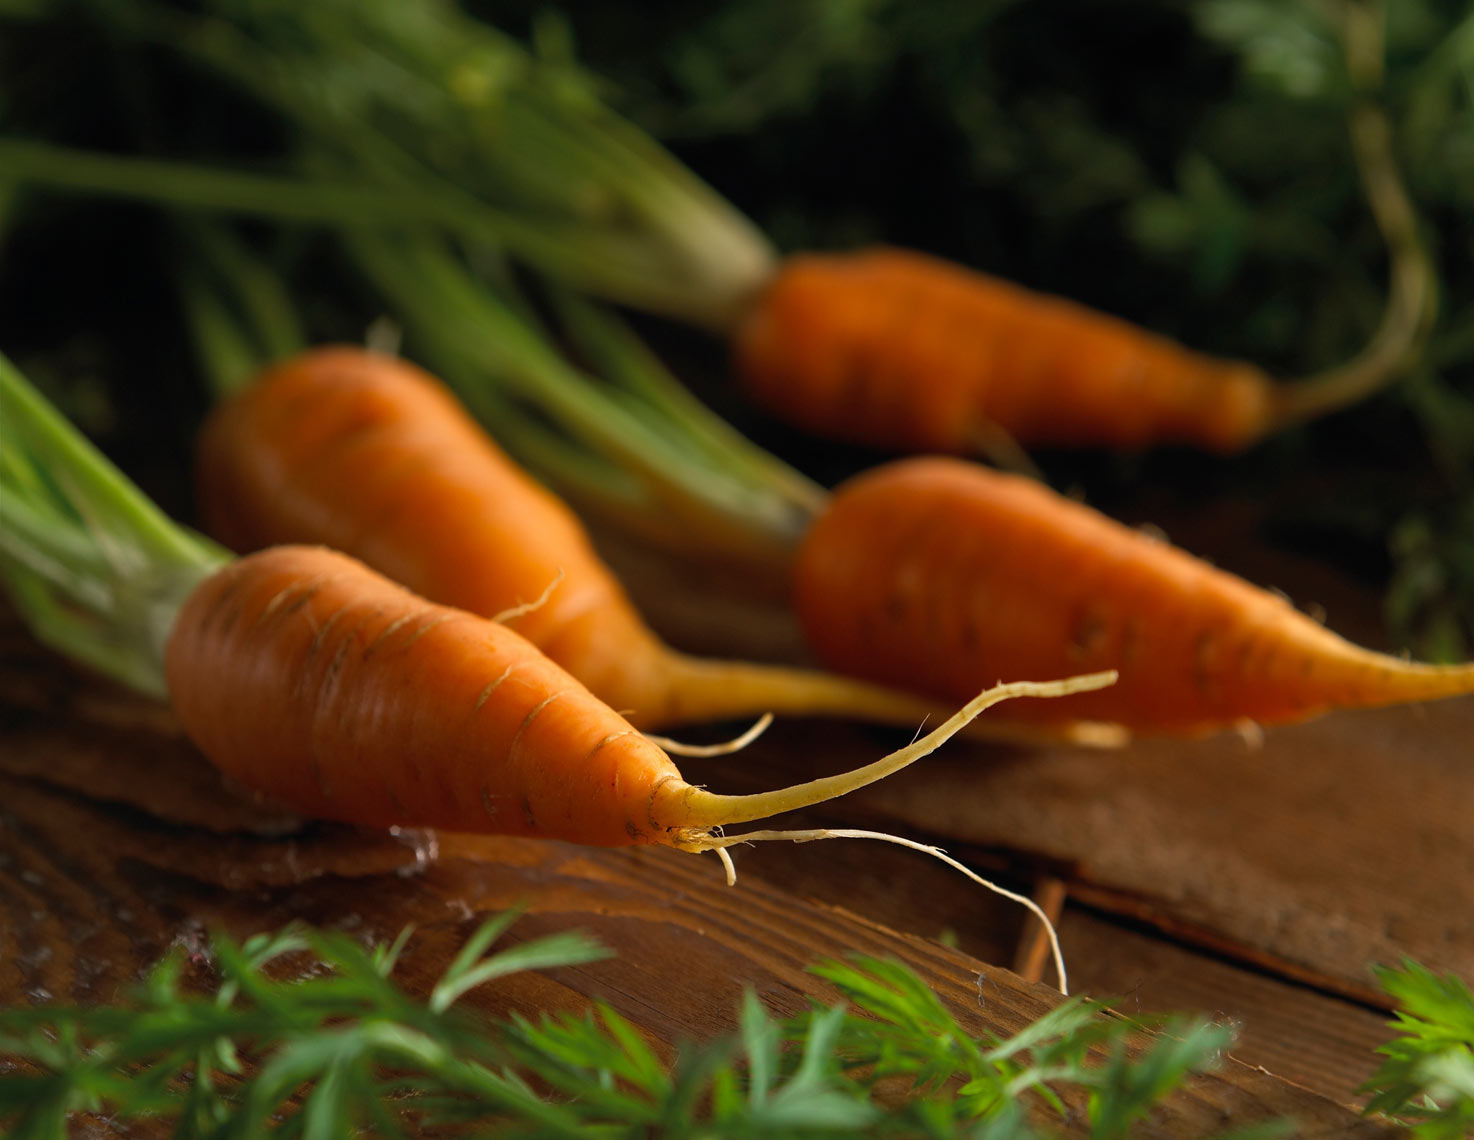 Carrots/group/old brown barnwood/agriculture photography